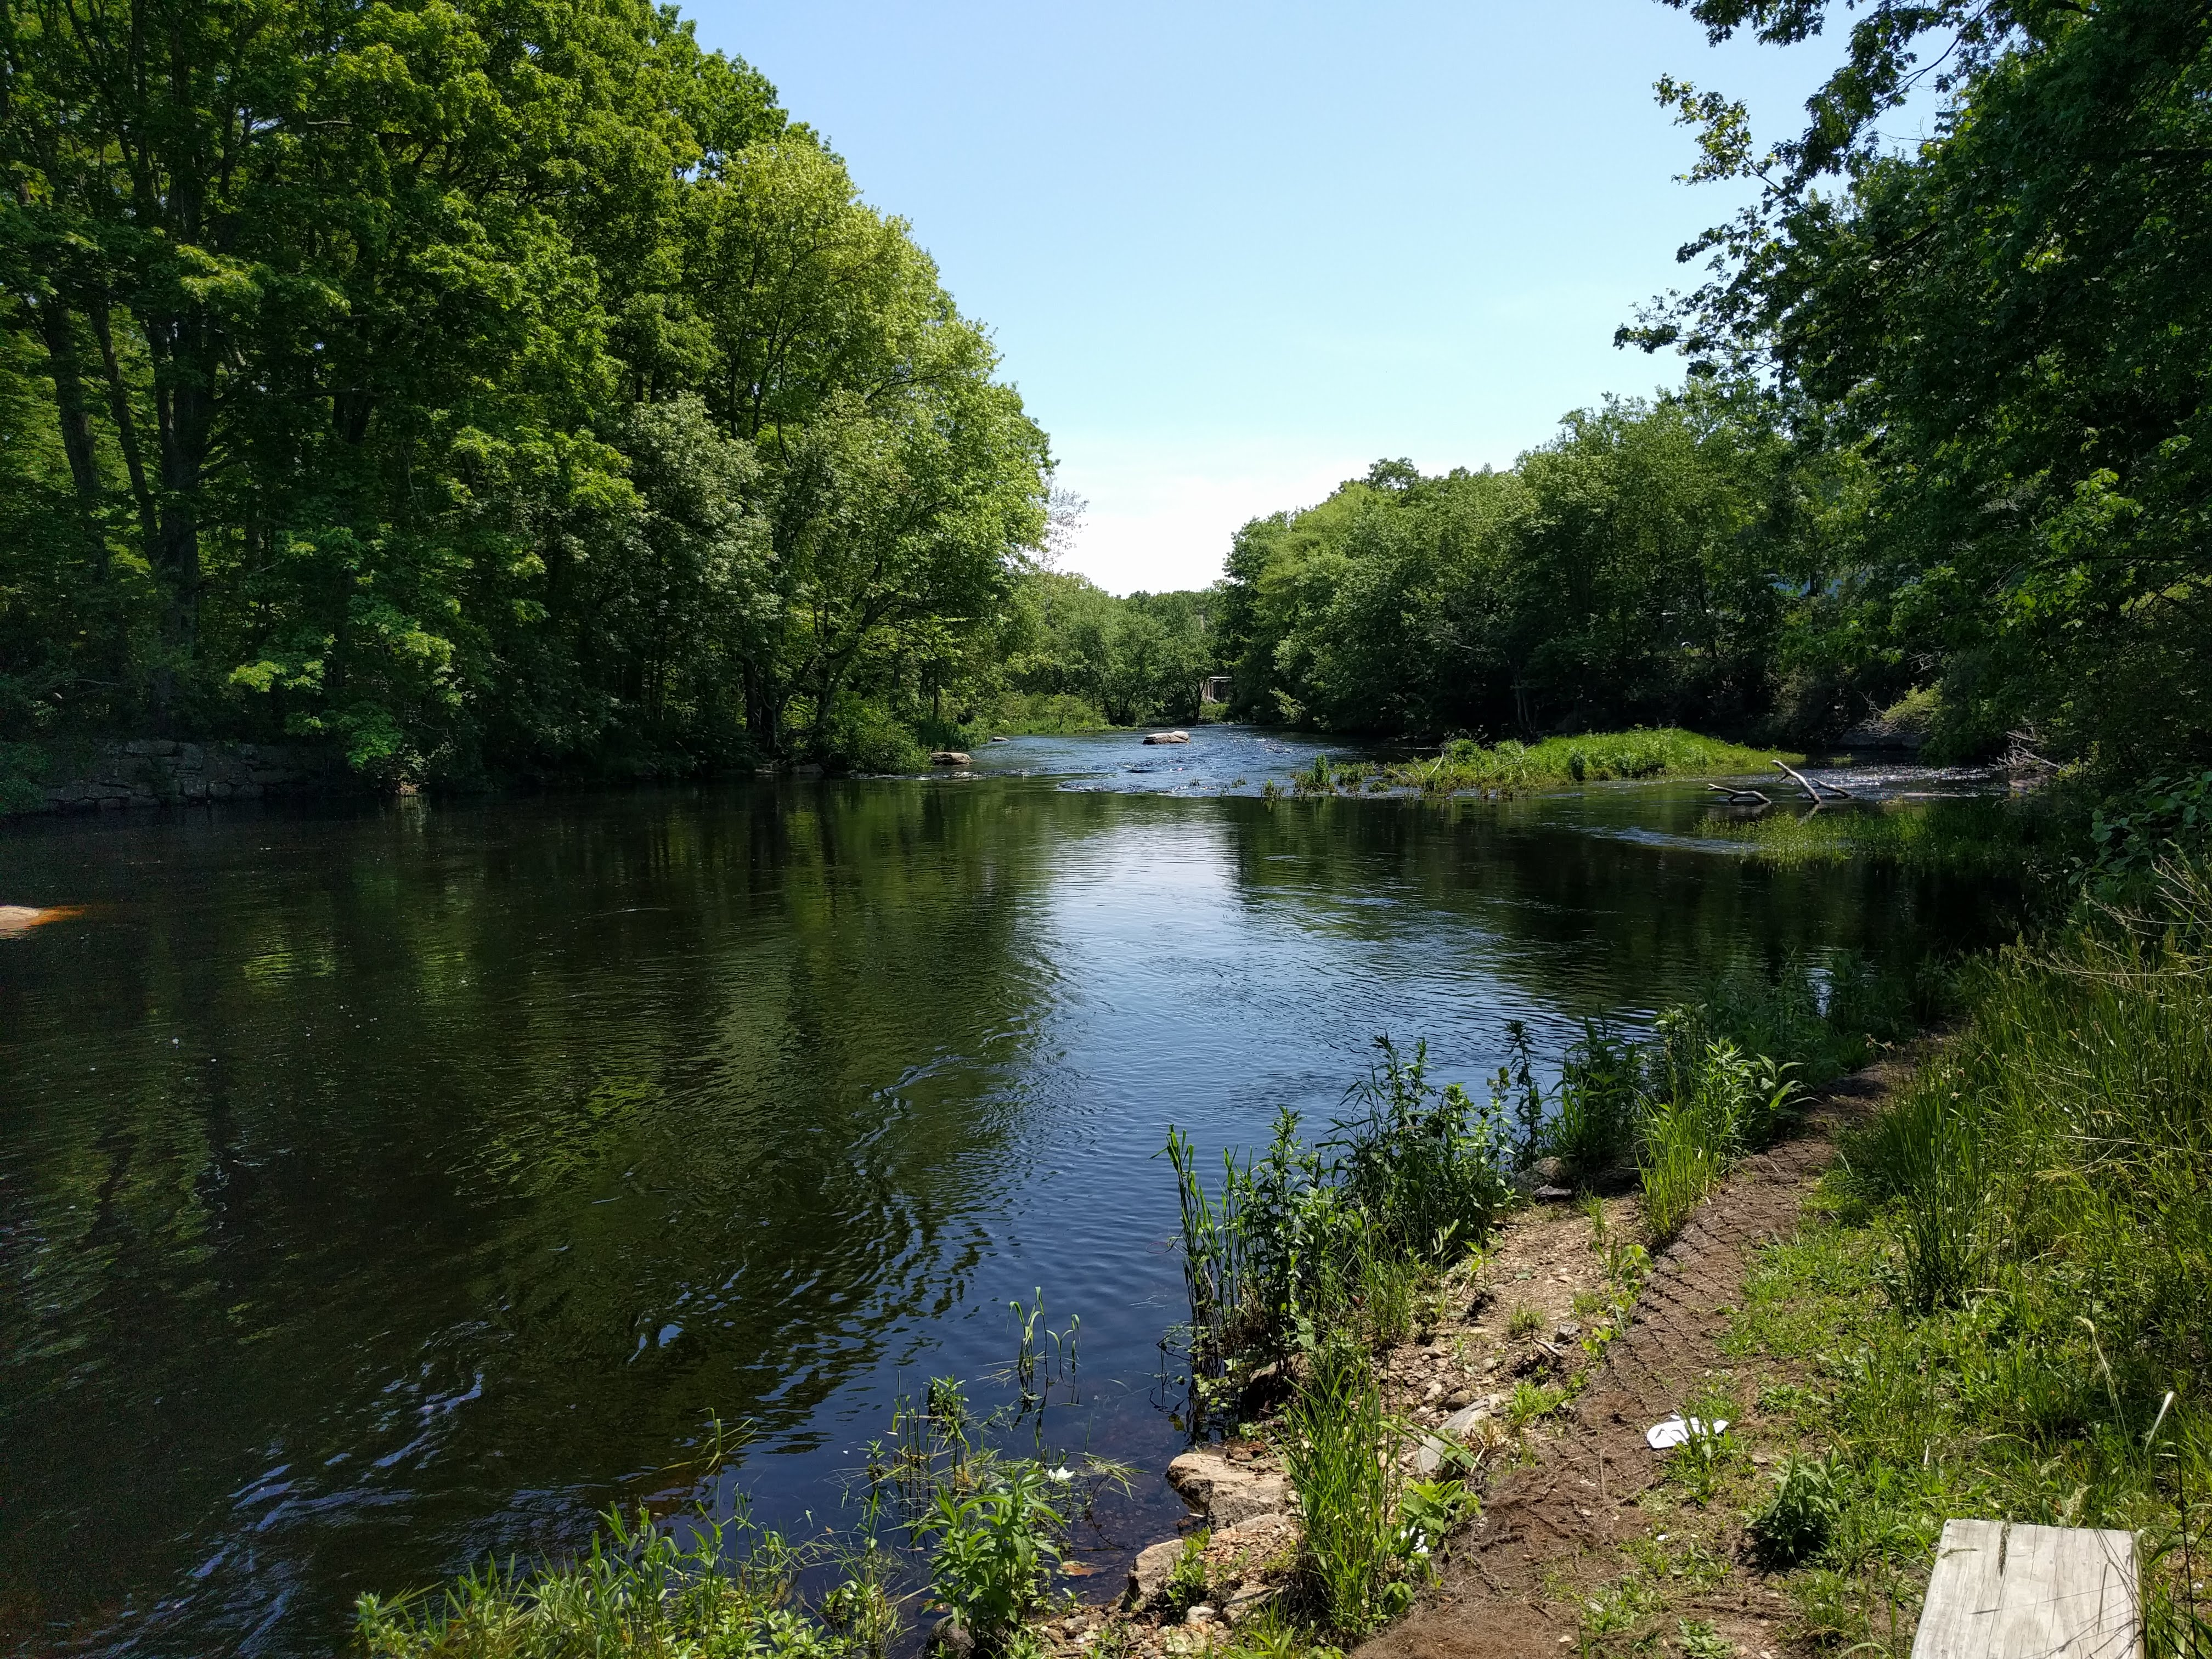 Pawcatuck River at the site of the old White Rock Dam